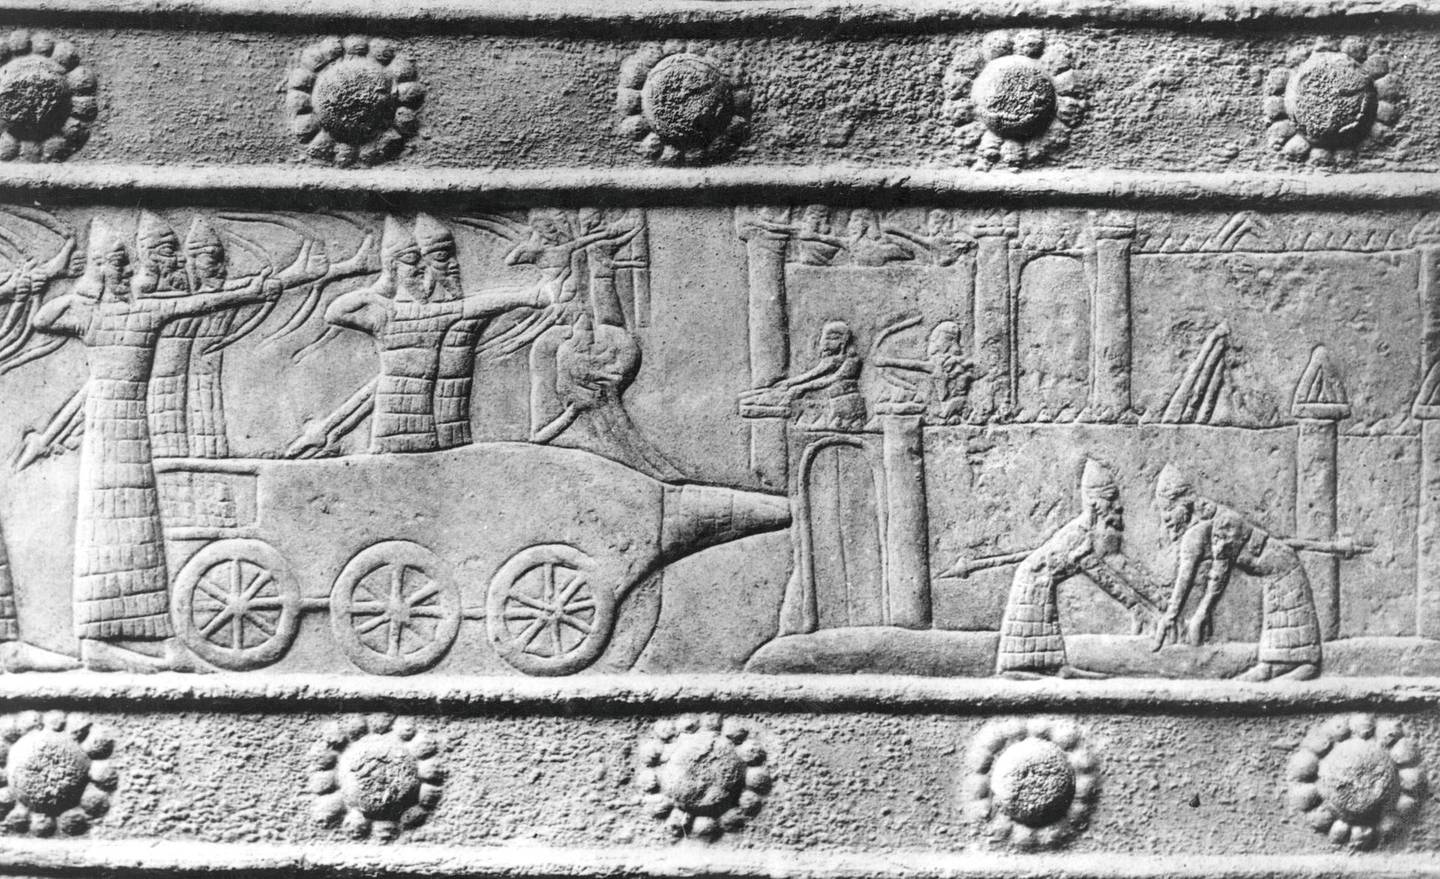 Circa 700 BC, Soldiers of the Assyrian army besieging a city, using a battering ram, on a wall-carving, Mesopotamia. (Photo by Hulton Archive/Getty Images)